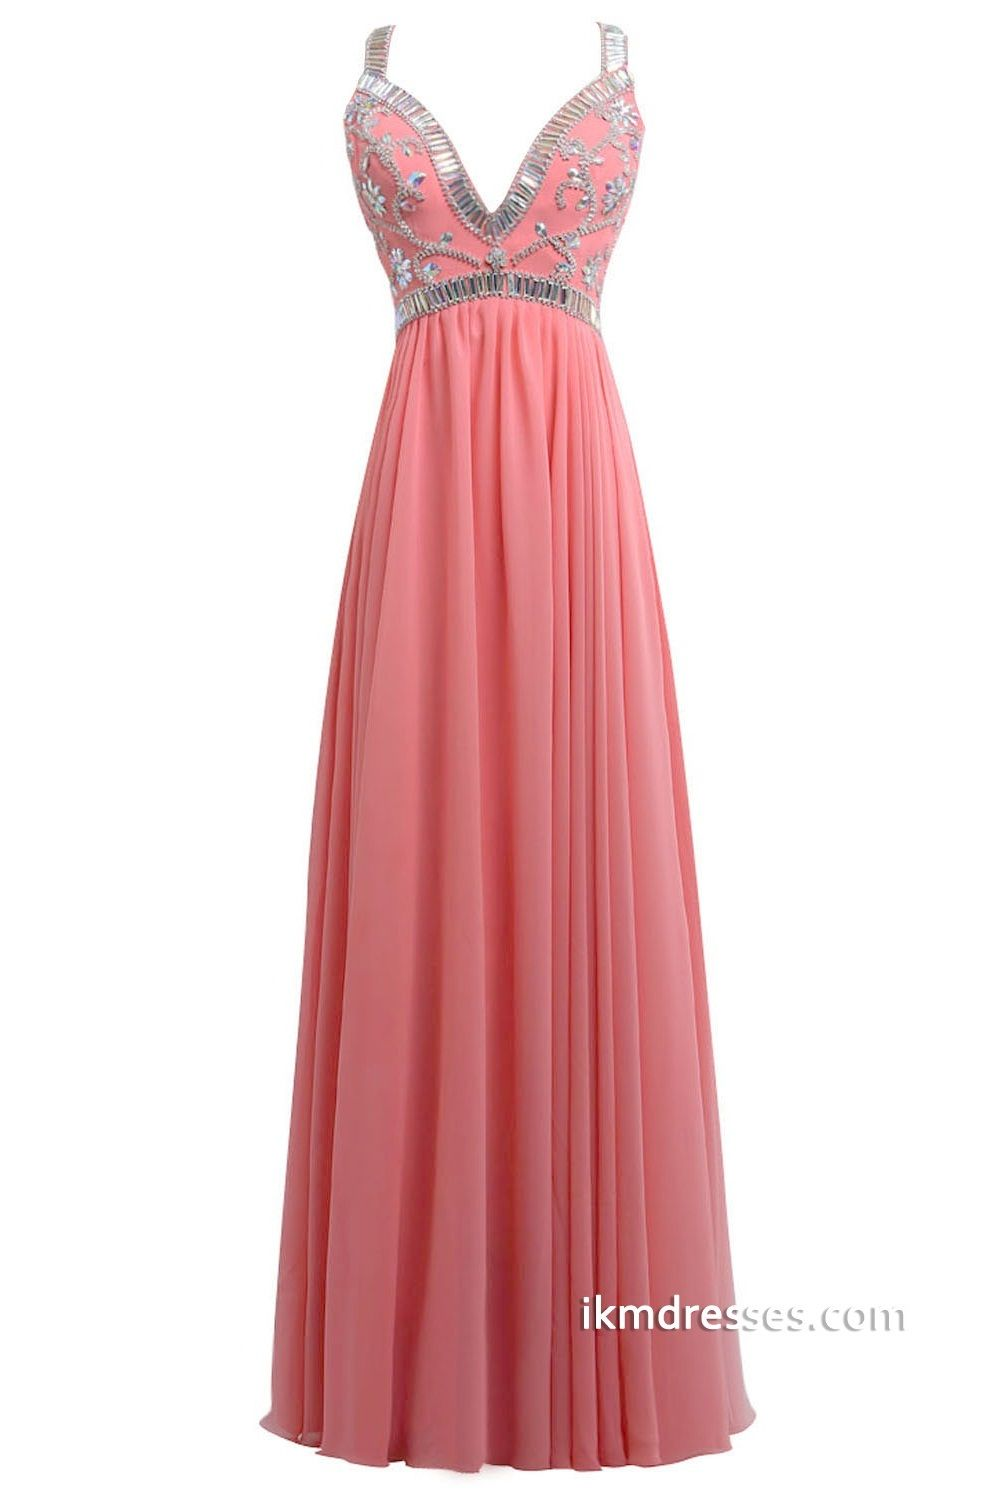 http://www.ikmdresses.com/2015-Sweetheart-Sequins-Long-Bridesmaid-Dresses-Chiffon-Beach-Prom-Dresses-p88410